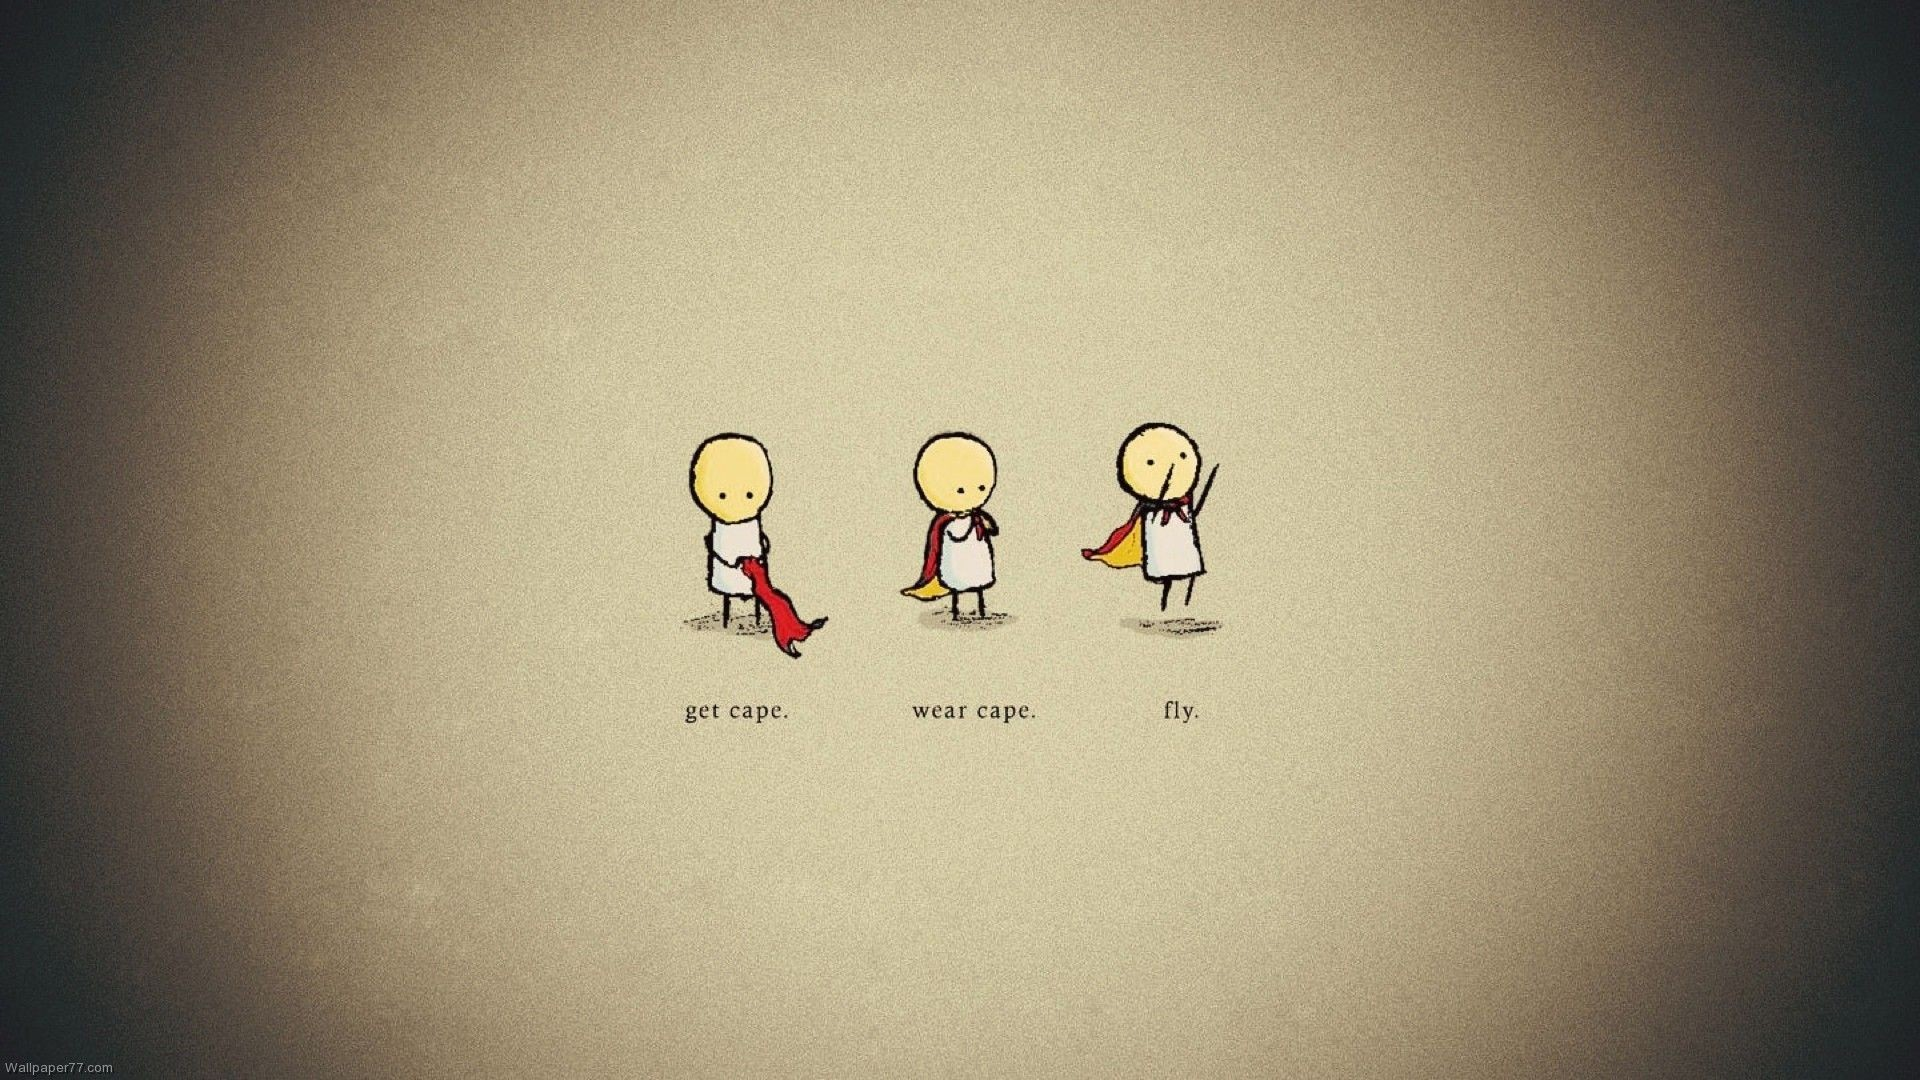 Cute Couples Wallpaper Free Download Funny Cartoon Wallpapers For Desktop 49 Images